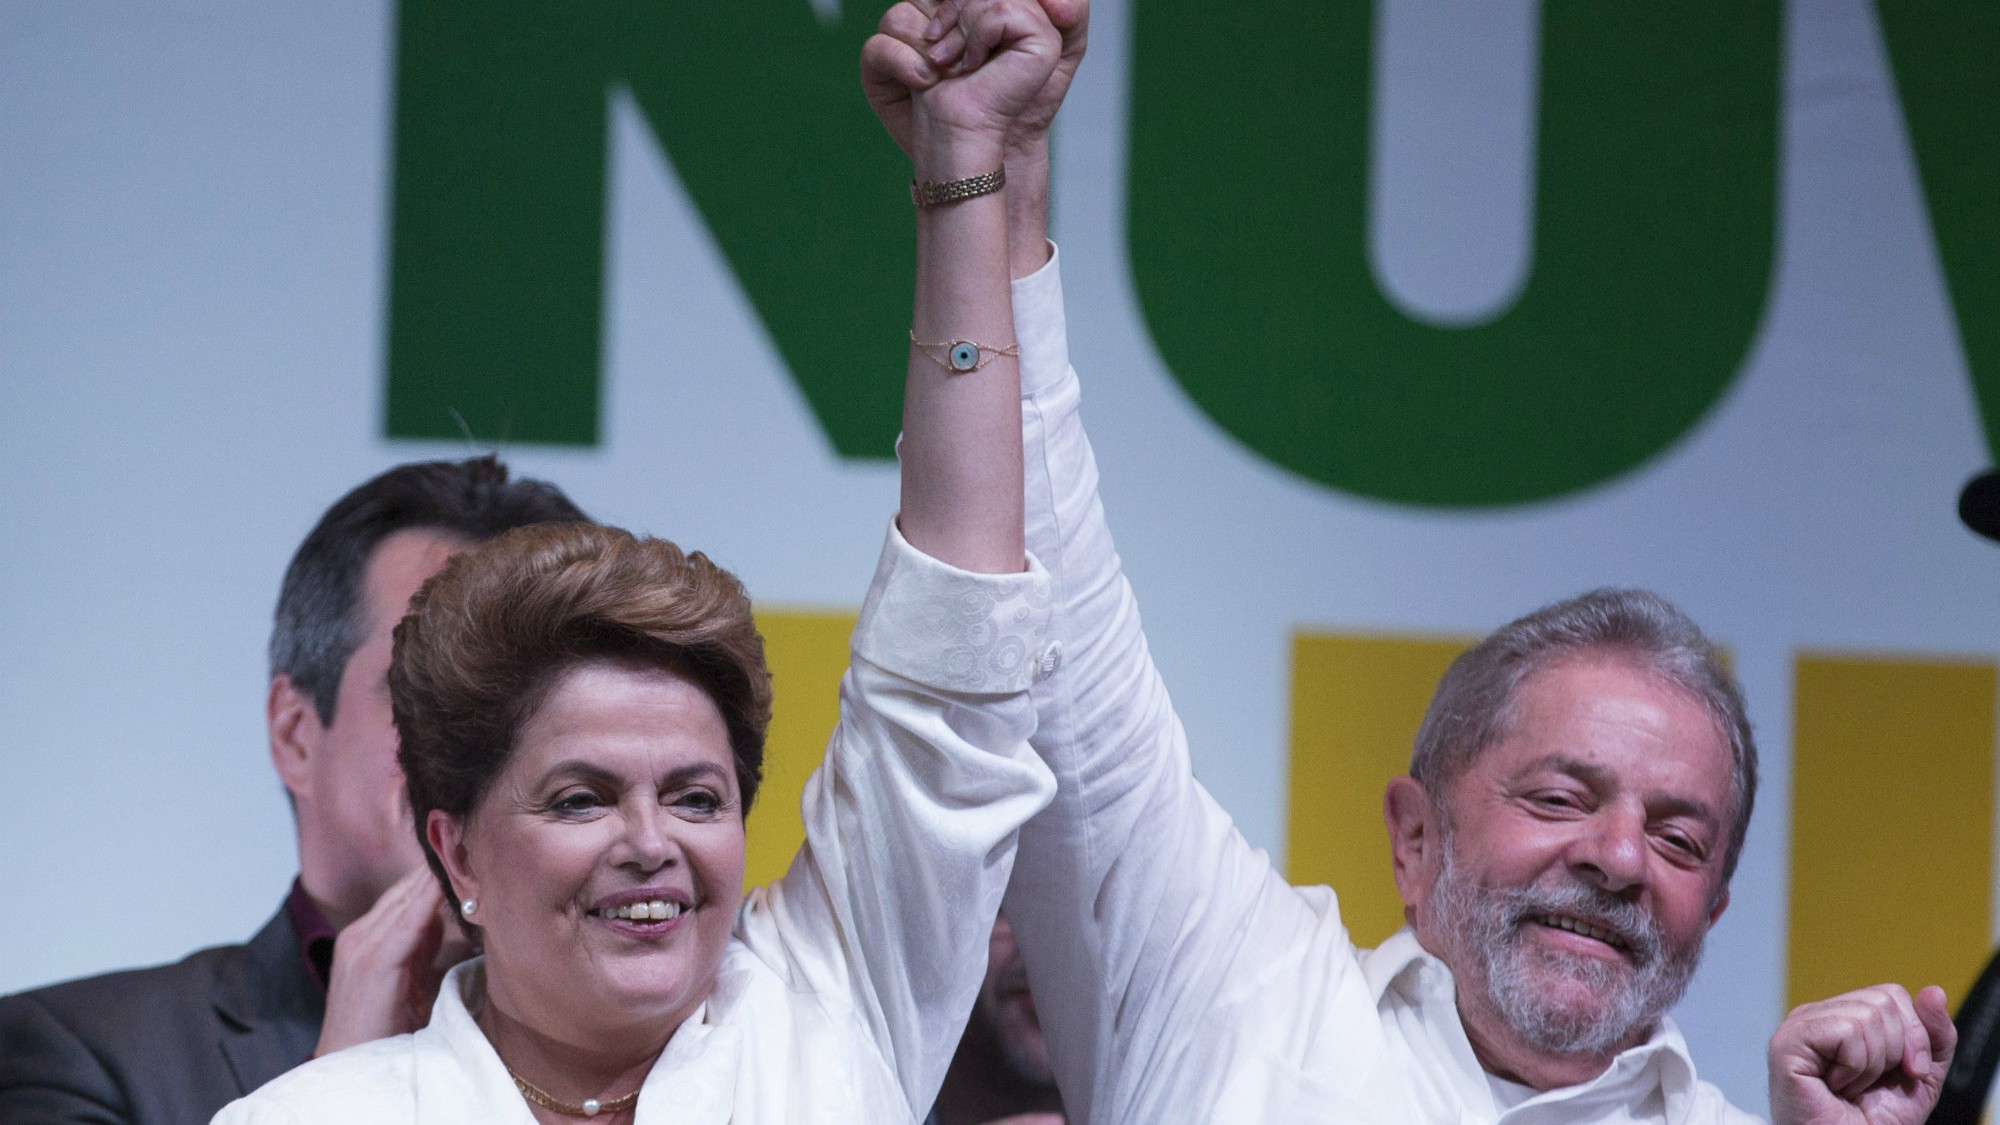 Brazil's President Dilma Rousseff celebrates with Brazil's Former President Luiz Inacio Lula da Silva at a press conference in a hotel in Brasilia, Brazil, Sunday, Oct. 26, 2014.